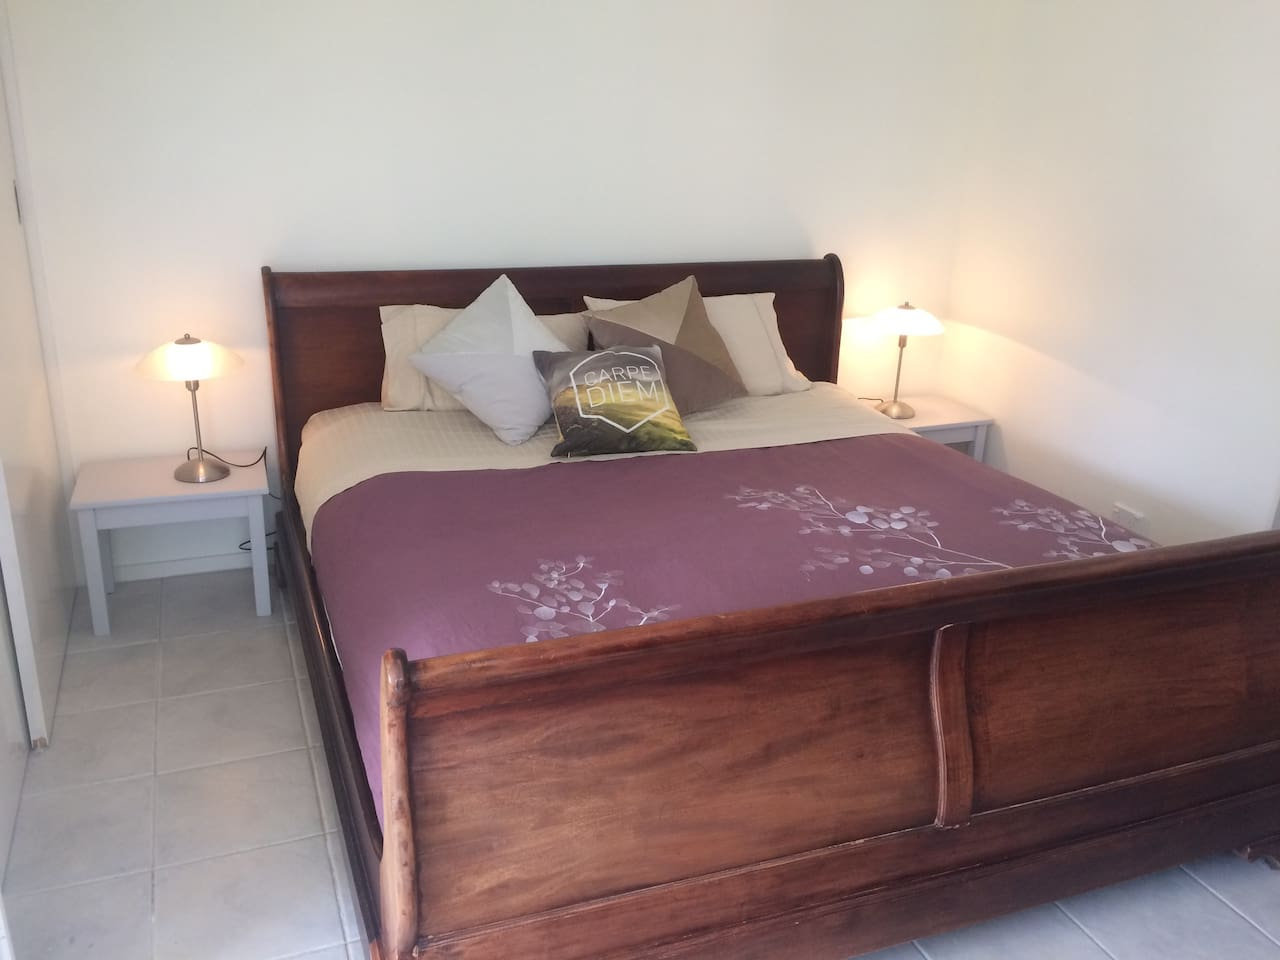 TH eking size bed has proved to be comfortable and popular with guests.